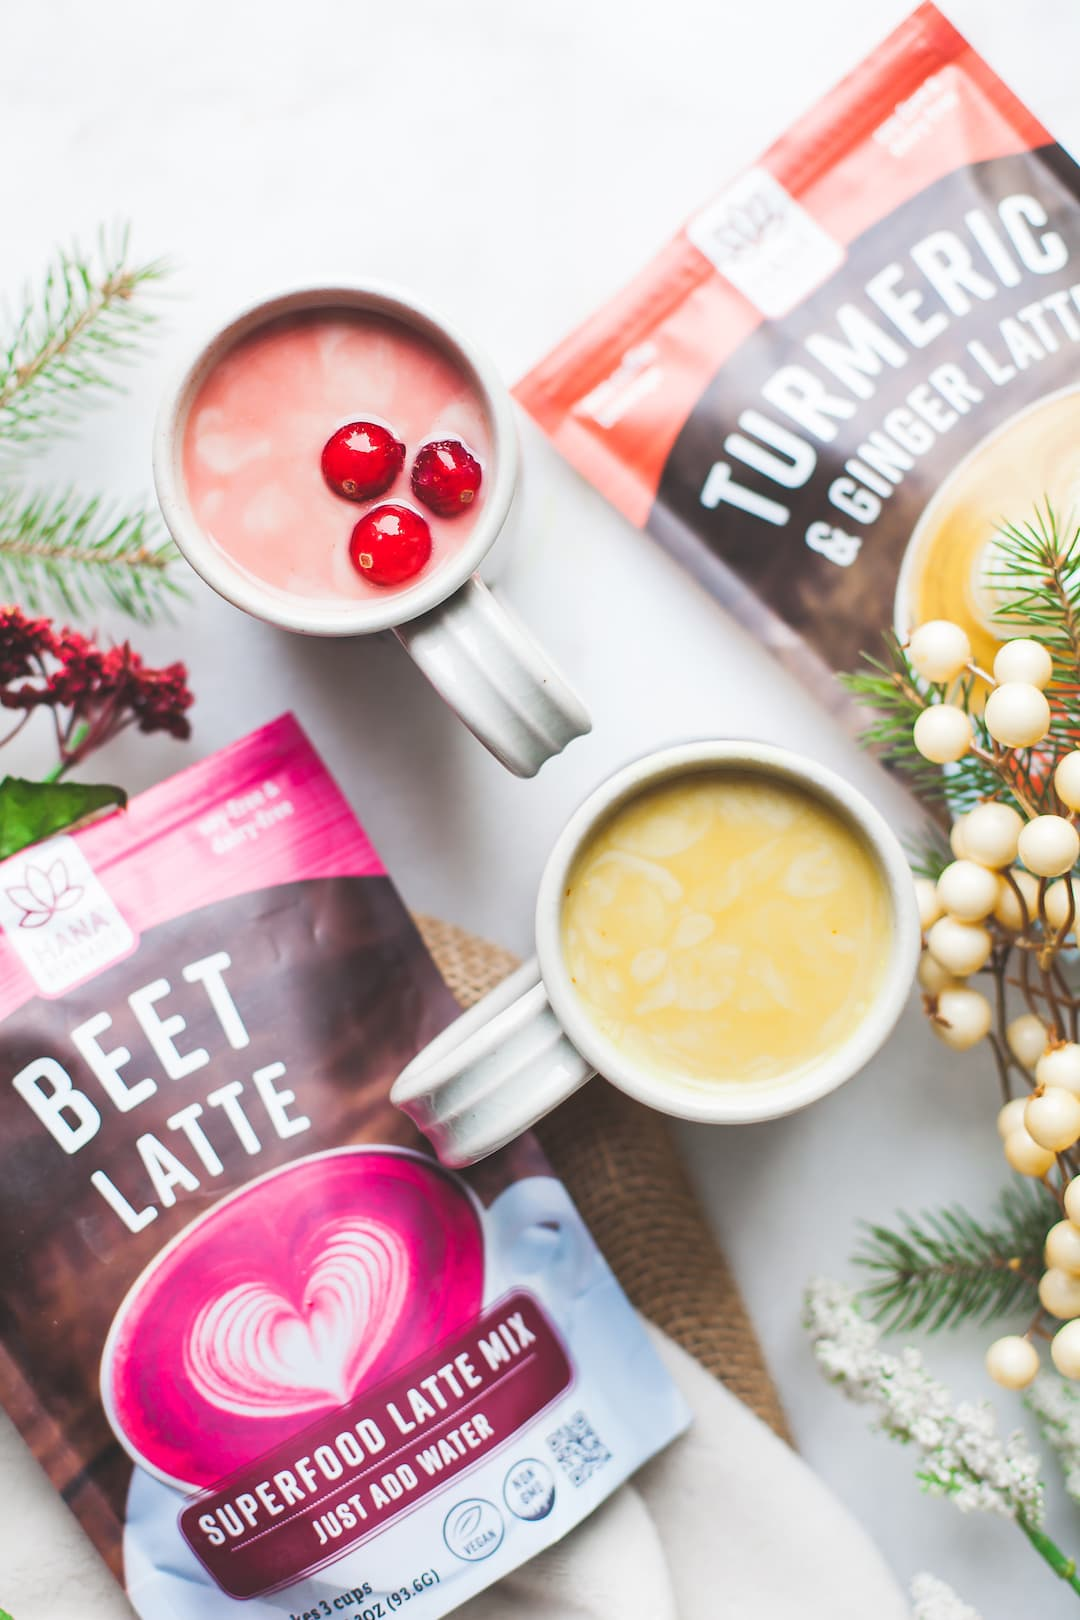 8 Self-Care Ideas For The Holiday Season - Enjoy a Latte or Healthy Hot Cocoa